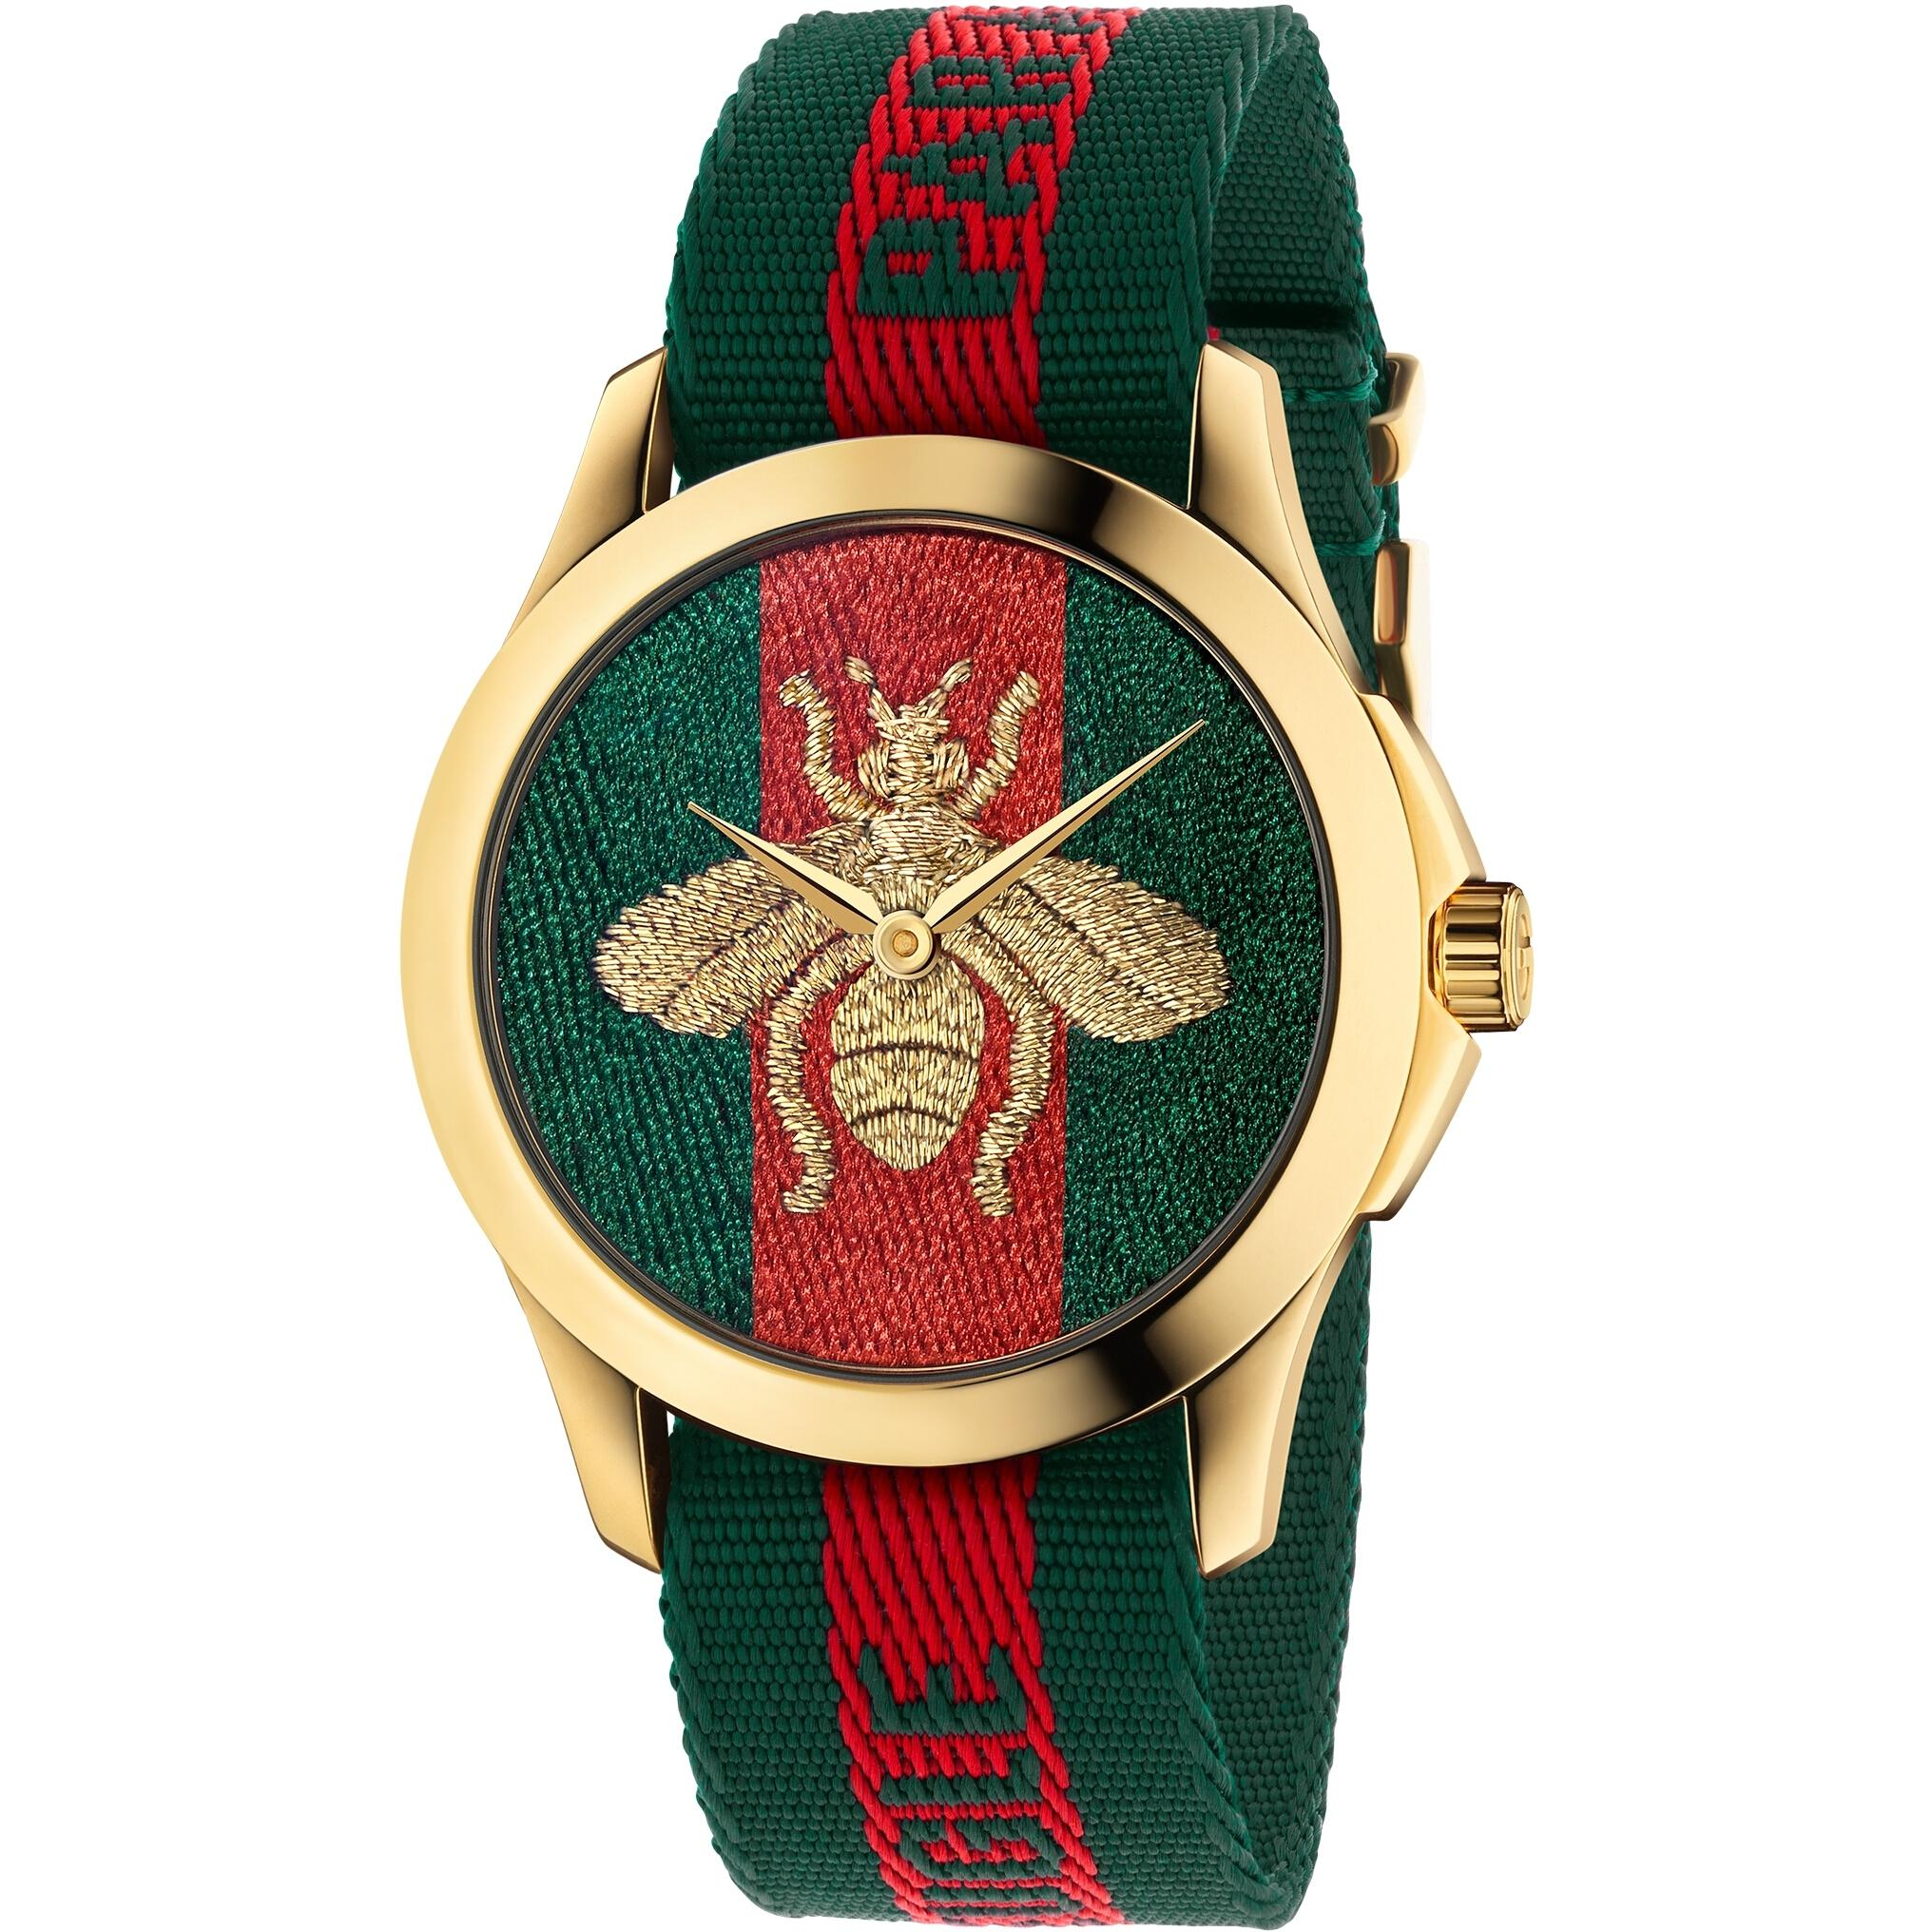 Gucci Ya126487 Swiss Le Marche Des Merveilles Green & Red Striped Nylon Watch By Watchessg.